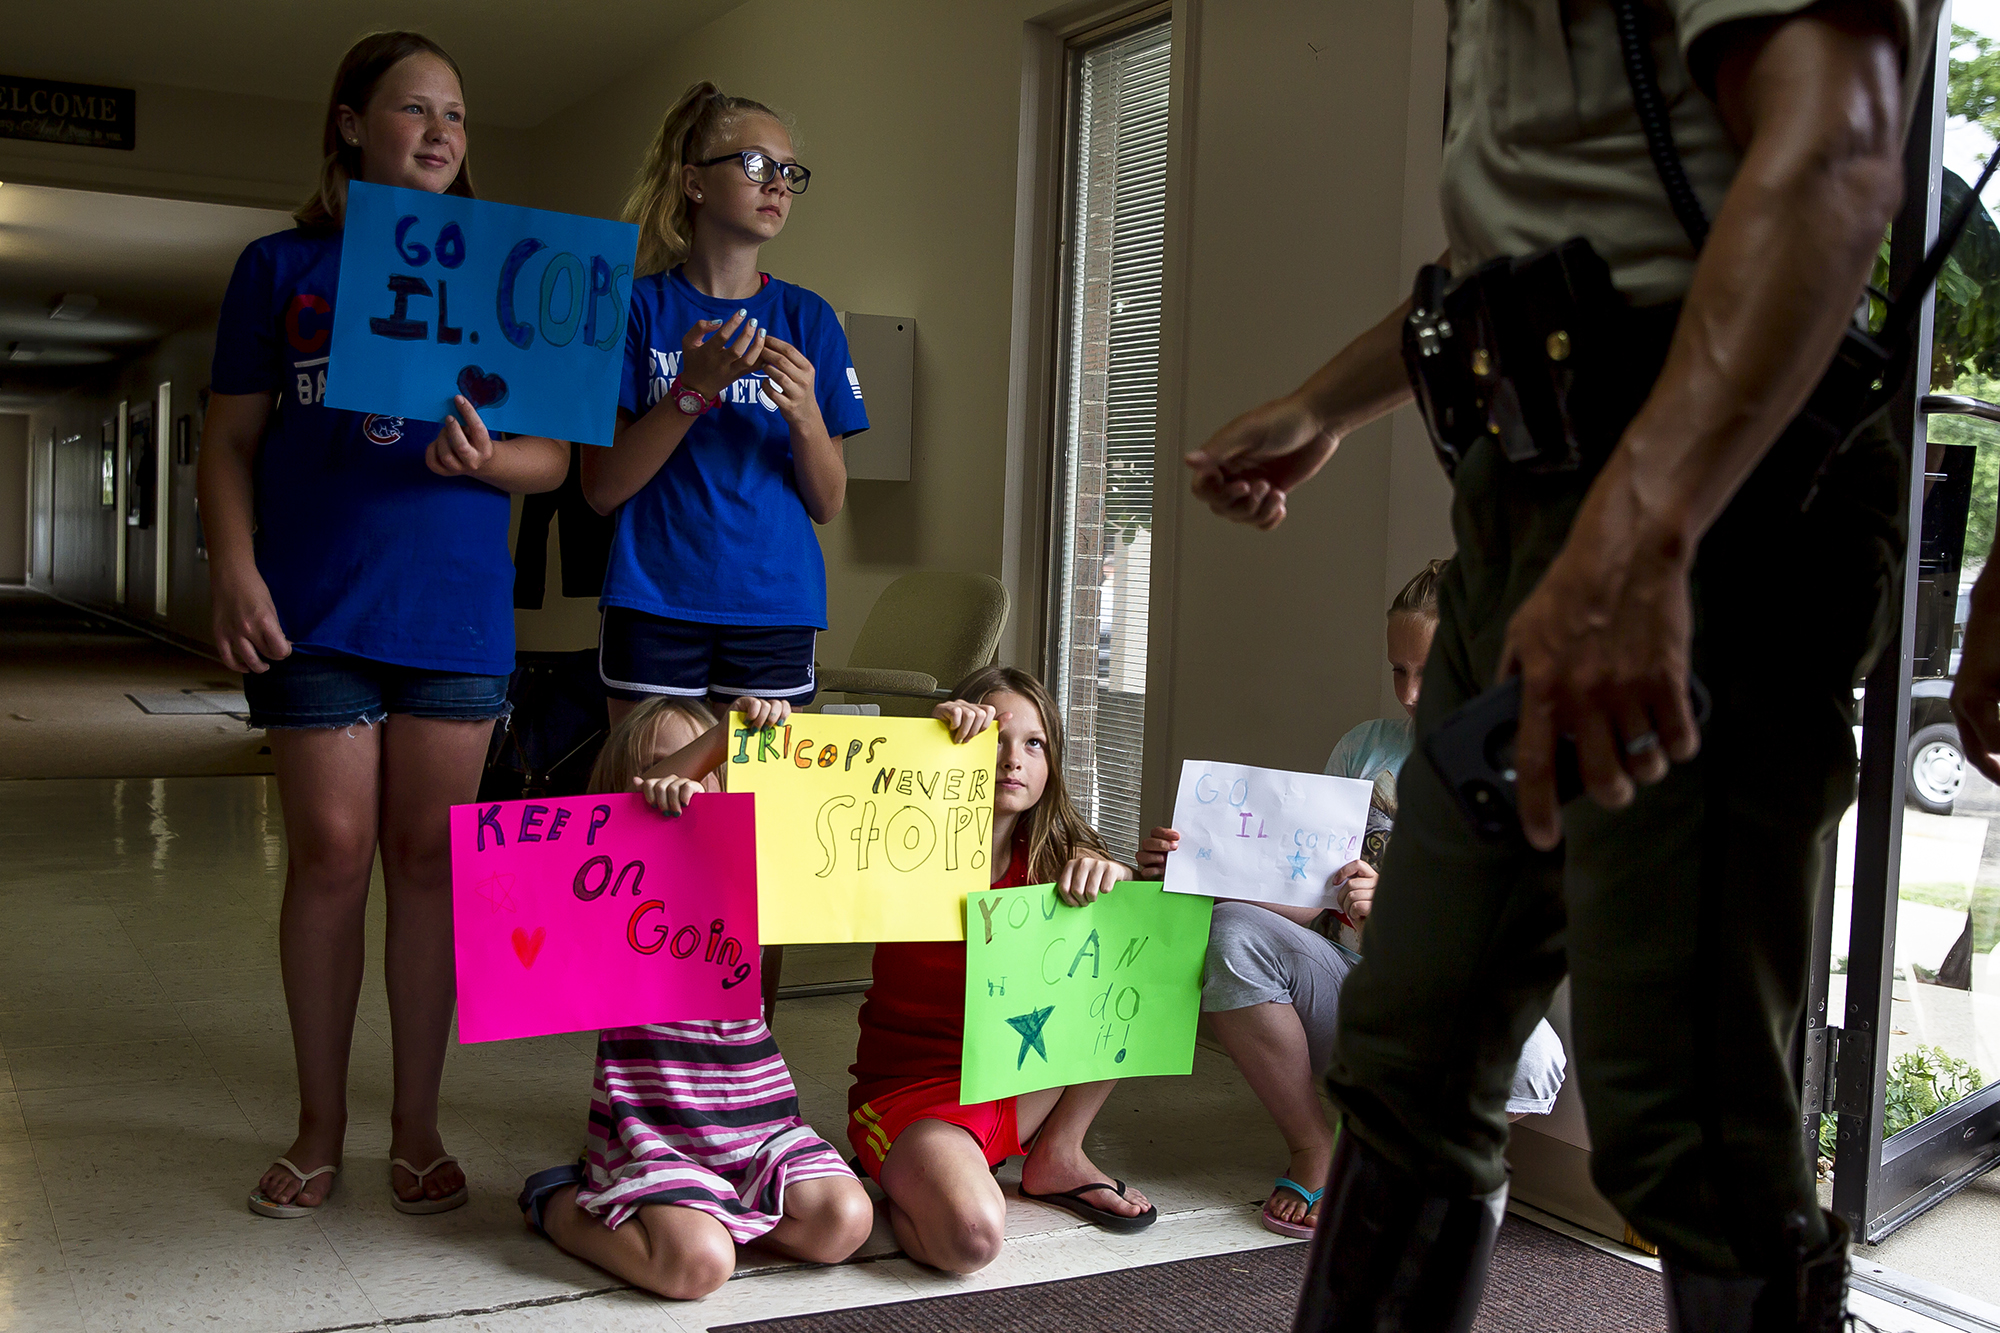 Caroline Kinkade, 9, center, peaks out from behind the signs that she and Savannah Robinette, 11, left, Katy Wiser, 12, Ainsley Robinette, 7, and Annie Robinette, 9, right, made for the cyclists with the Illinois Chapter of Concerns of Police Survivors (ÒC.O.P.SÓ) as they made a stop at the First Baptist Church during the 14th annual Cycle Across Illinois, Thursday, July 19, 2018, in Waverly, Ill. Cycle Across Illinois is a charity bicycle ride to support the Illinois families of law enforcement officers who have died in the line of duty. The ride is over 300 miles and began at the Mississippi River in Alton, Ill., and will end at the Gold Star Families Memorial and Park in Chicago, Ill.[Justin L. Fowler/The State Journal-Register]